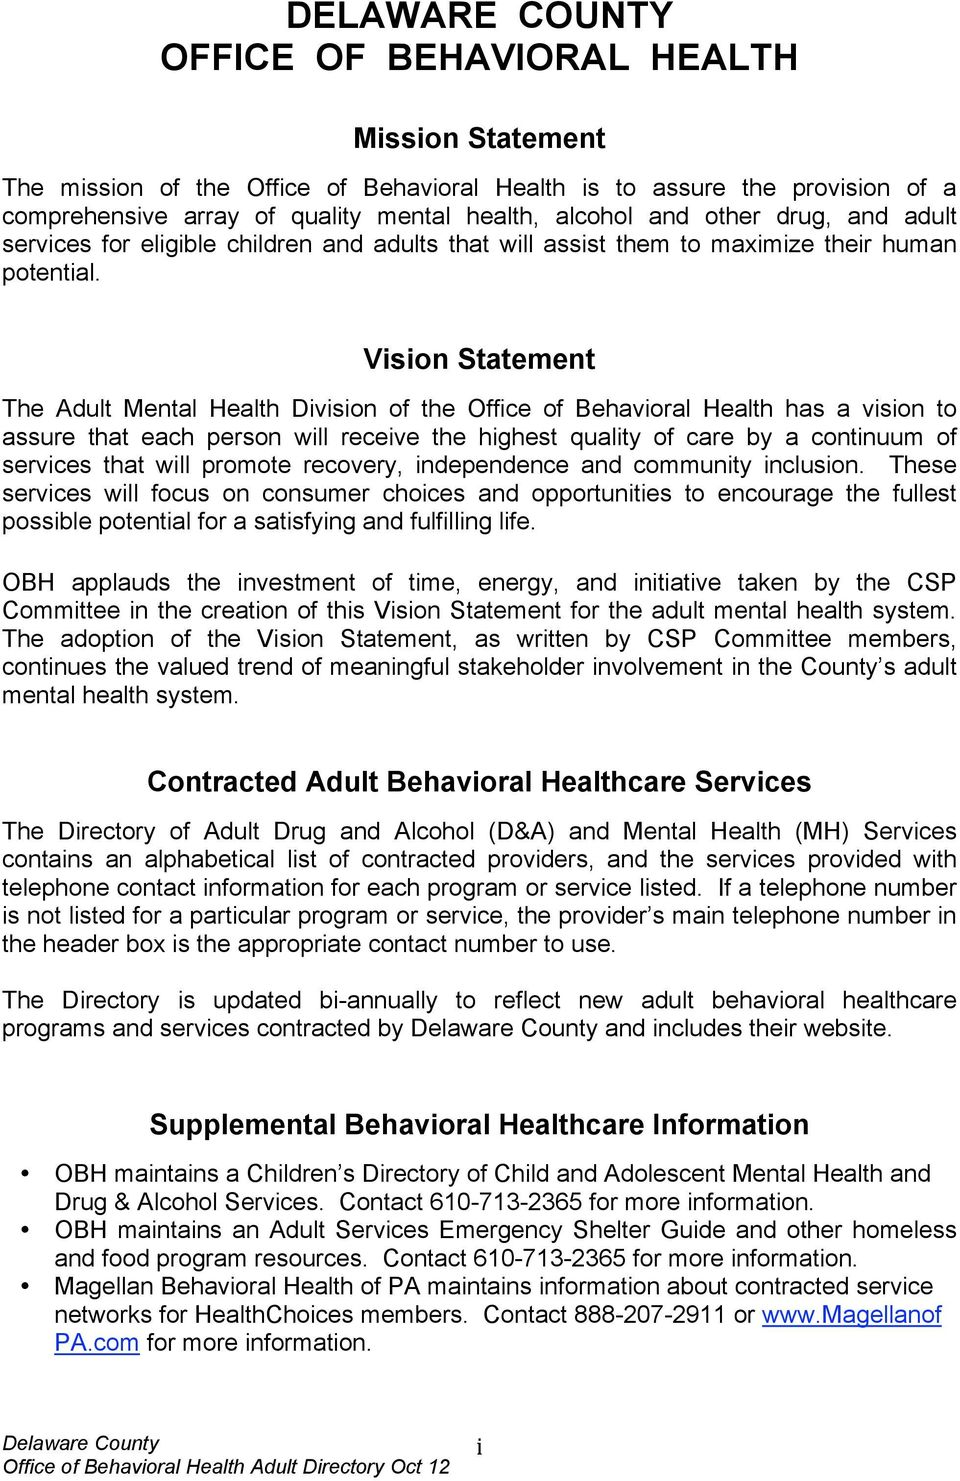 Vision Statement The Adult Mental Health Division of the Office of Behavioral Health has a vision to assure that each person will receive the highest quality of care by a continuum of services that